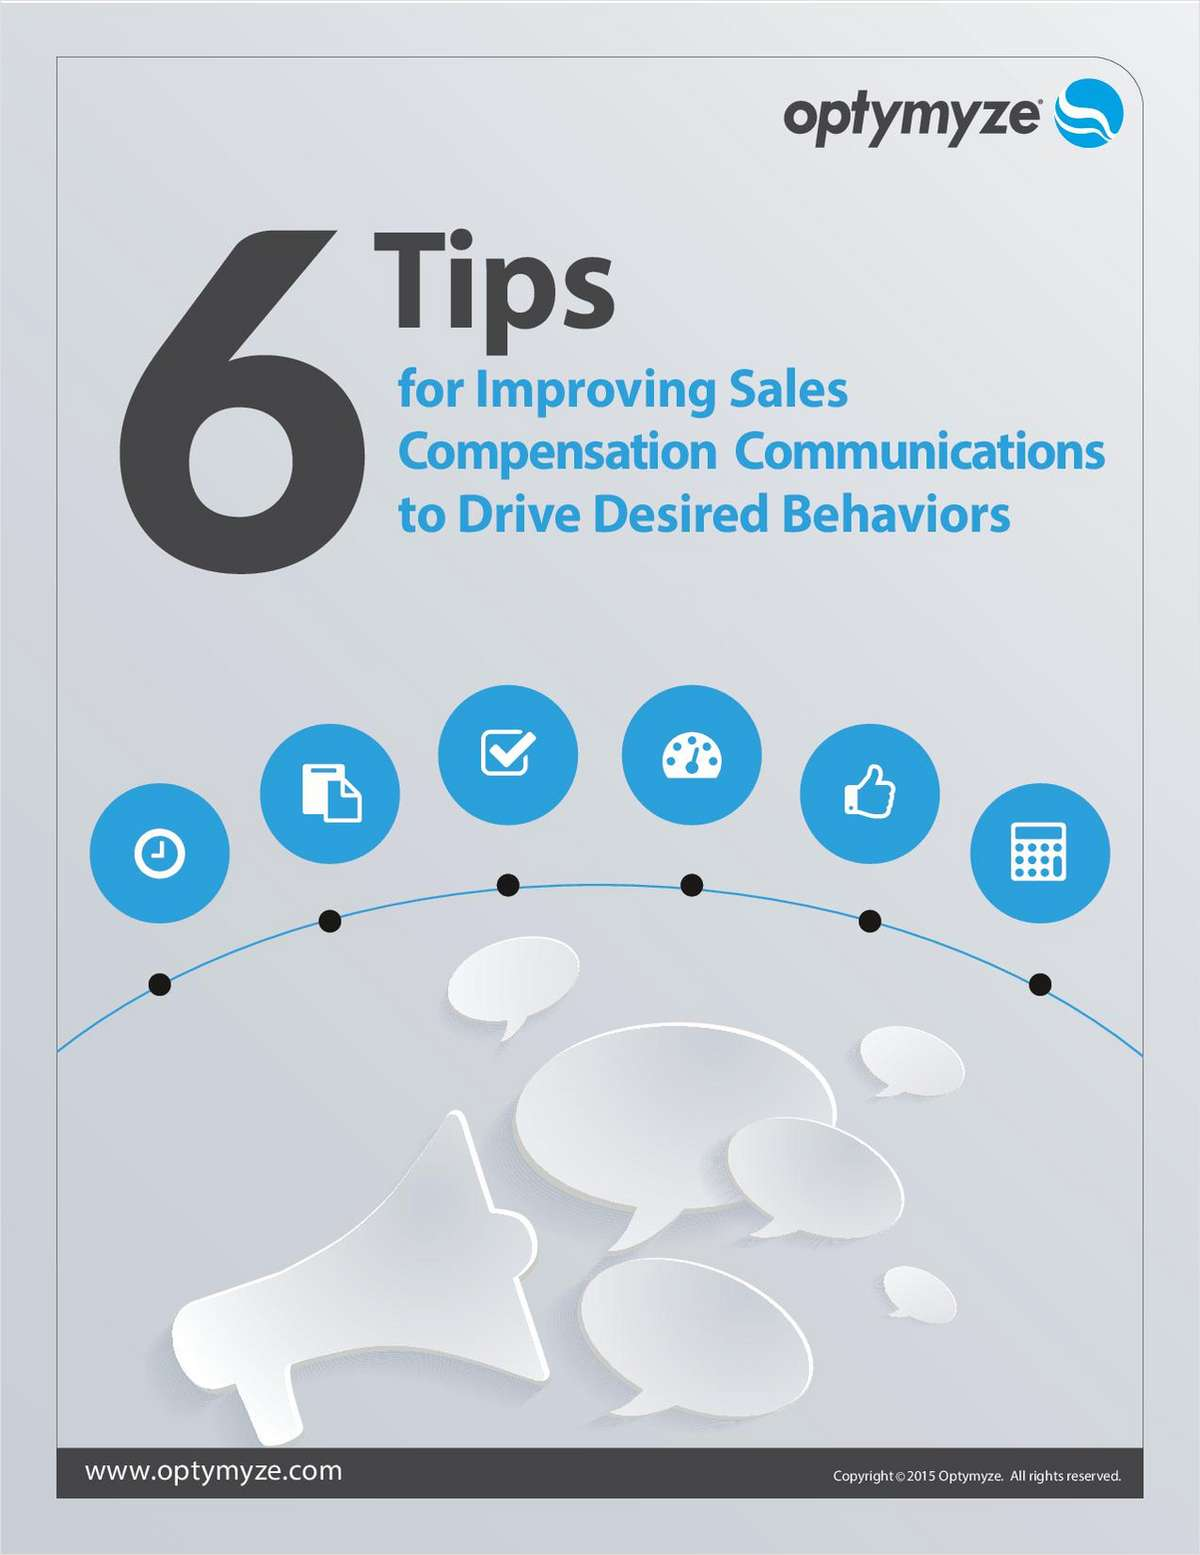 6 Tips for Improving Sales Compensation Communications to Drive Desired Behaviors